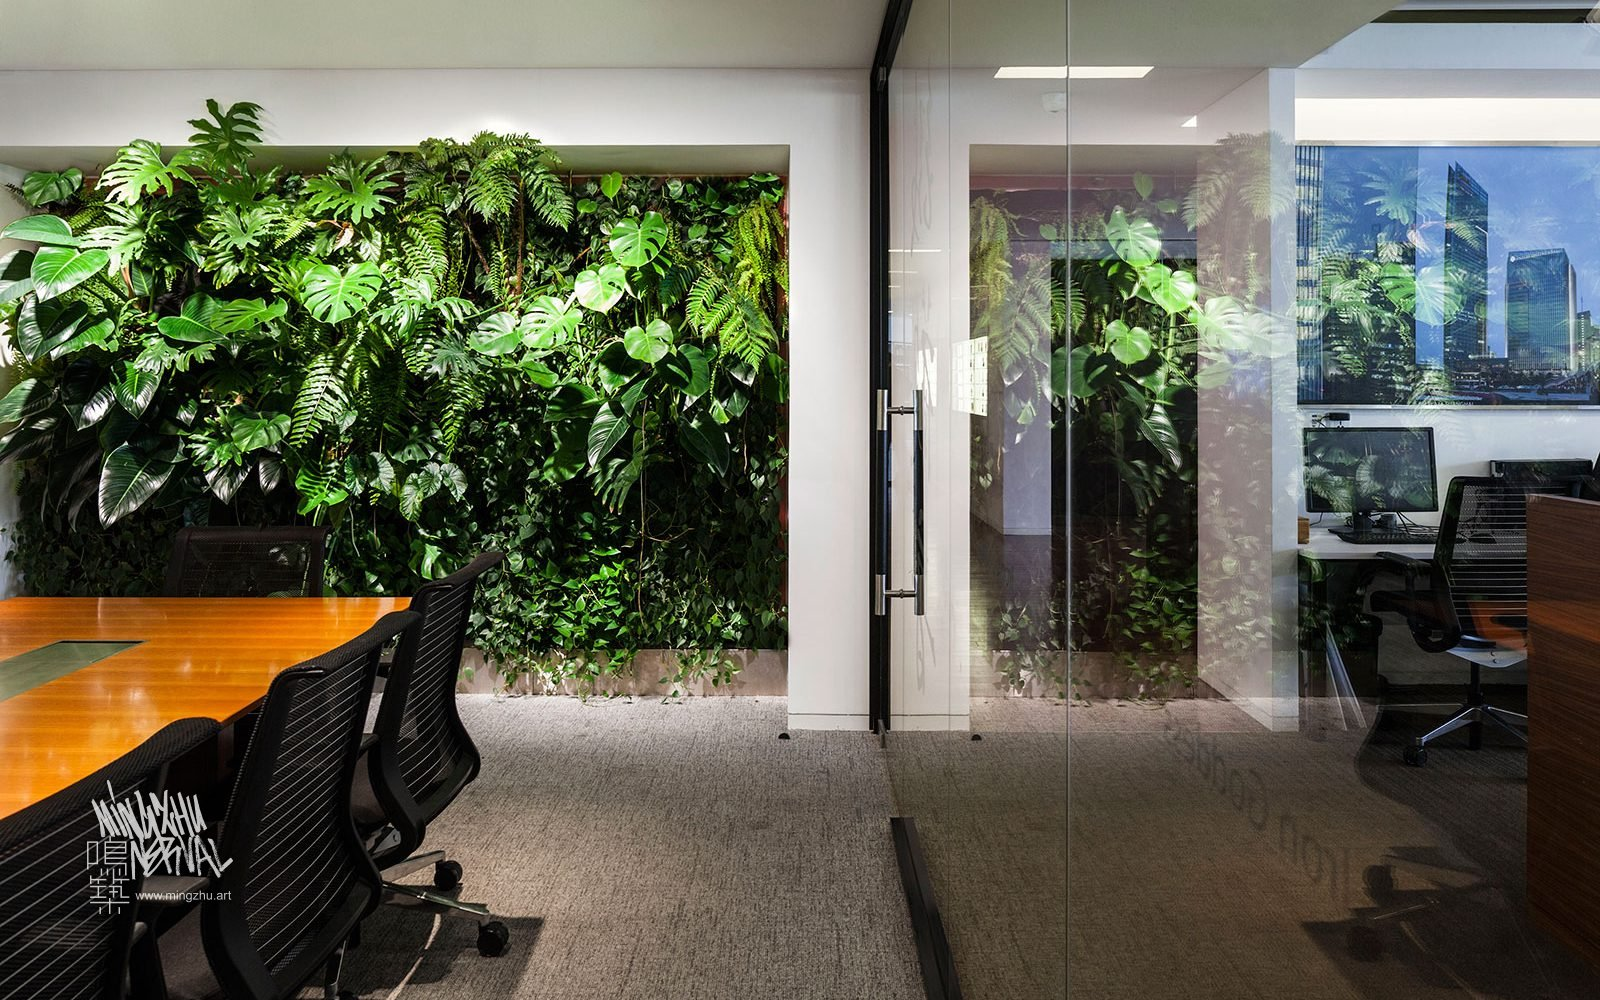 At Mingzhu Nerval, we thrive at creating the most beautiful vertical gardens in the world. For Gensler, we created a healthy workspace design - Shanghai, 2017.